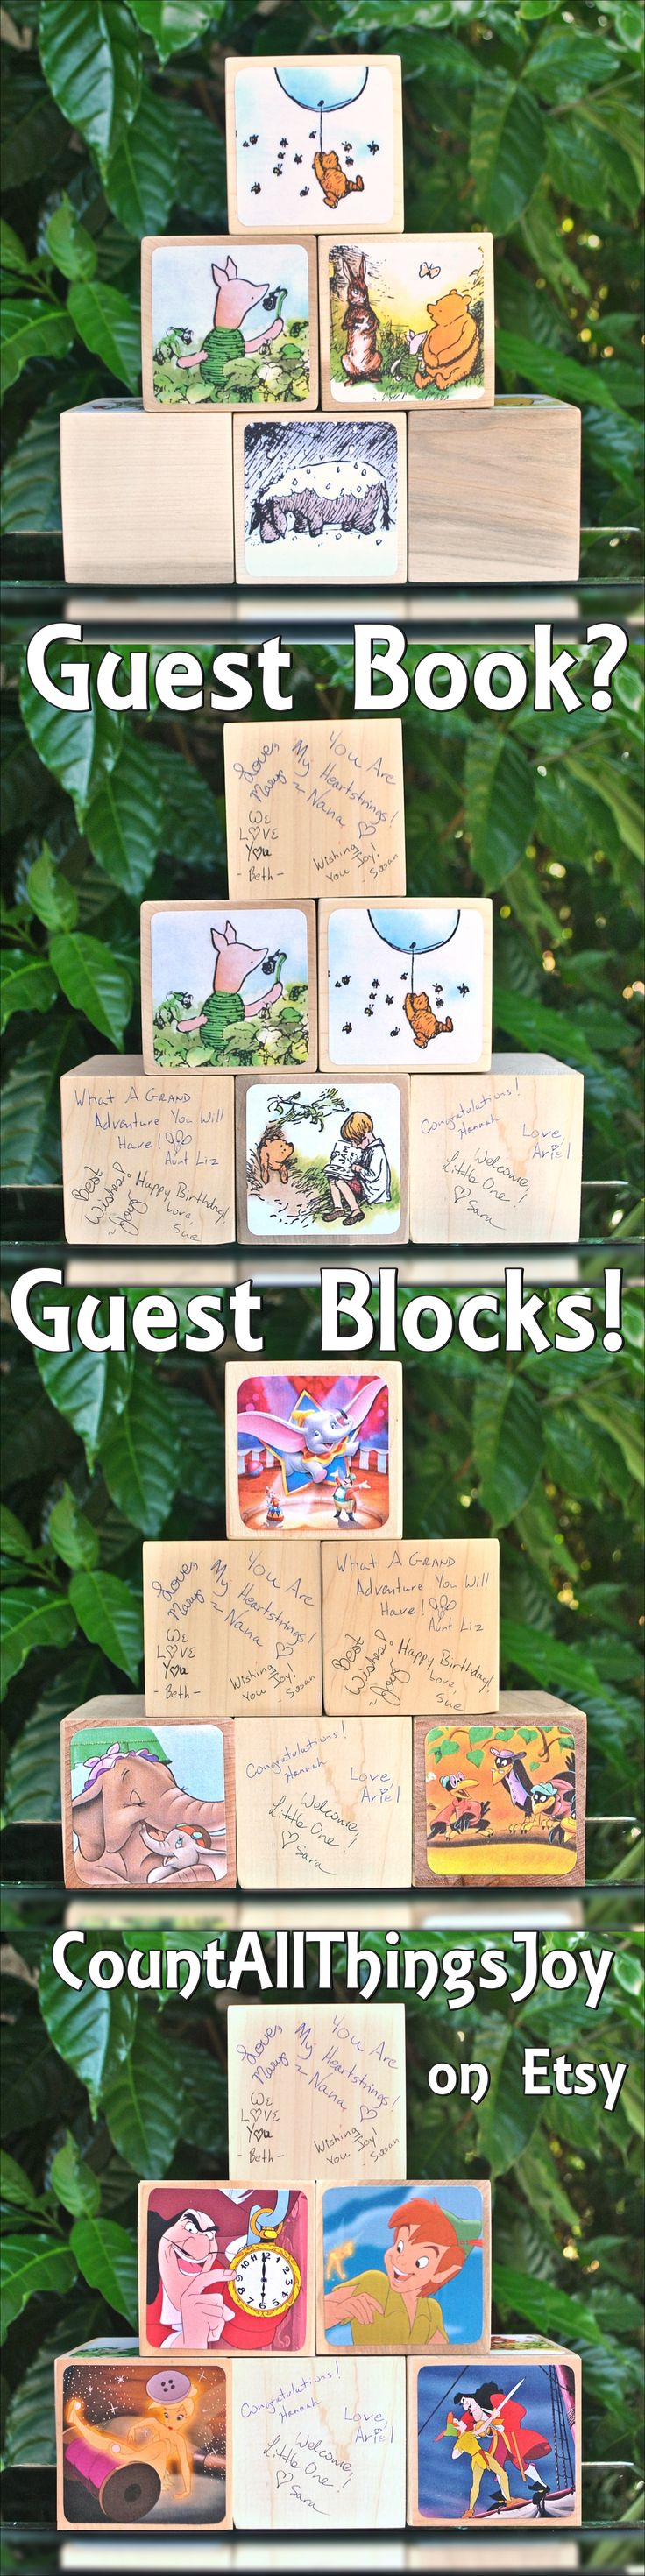 GUEST BOOK BLOCKS Storybook Wooden Blocks For Baby Shower Nursery Decor,  Birthday, Gift For Boys, Girls, With Blank Sides For Guests To Sign